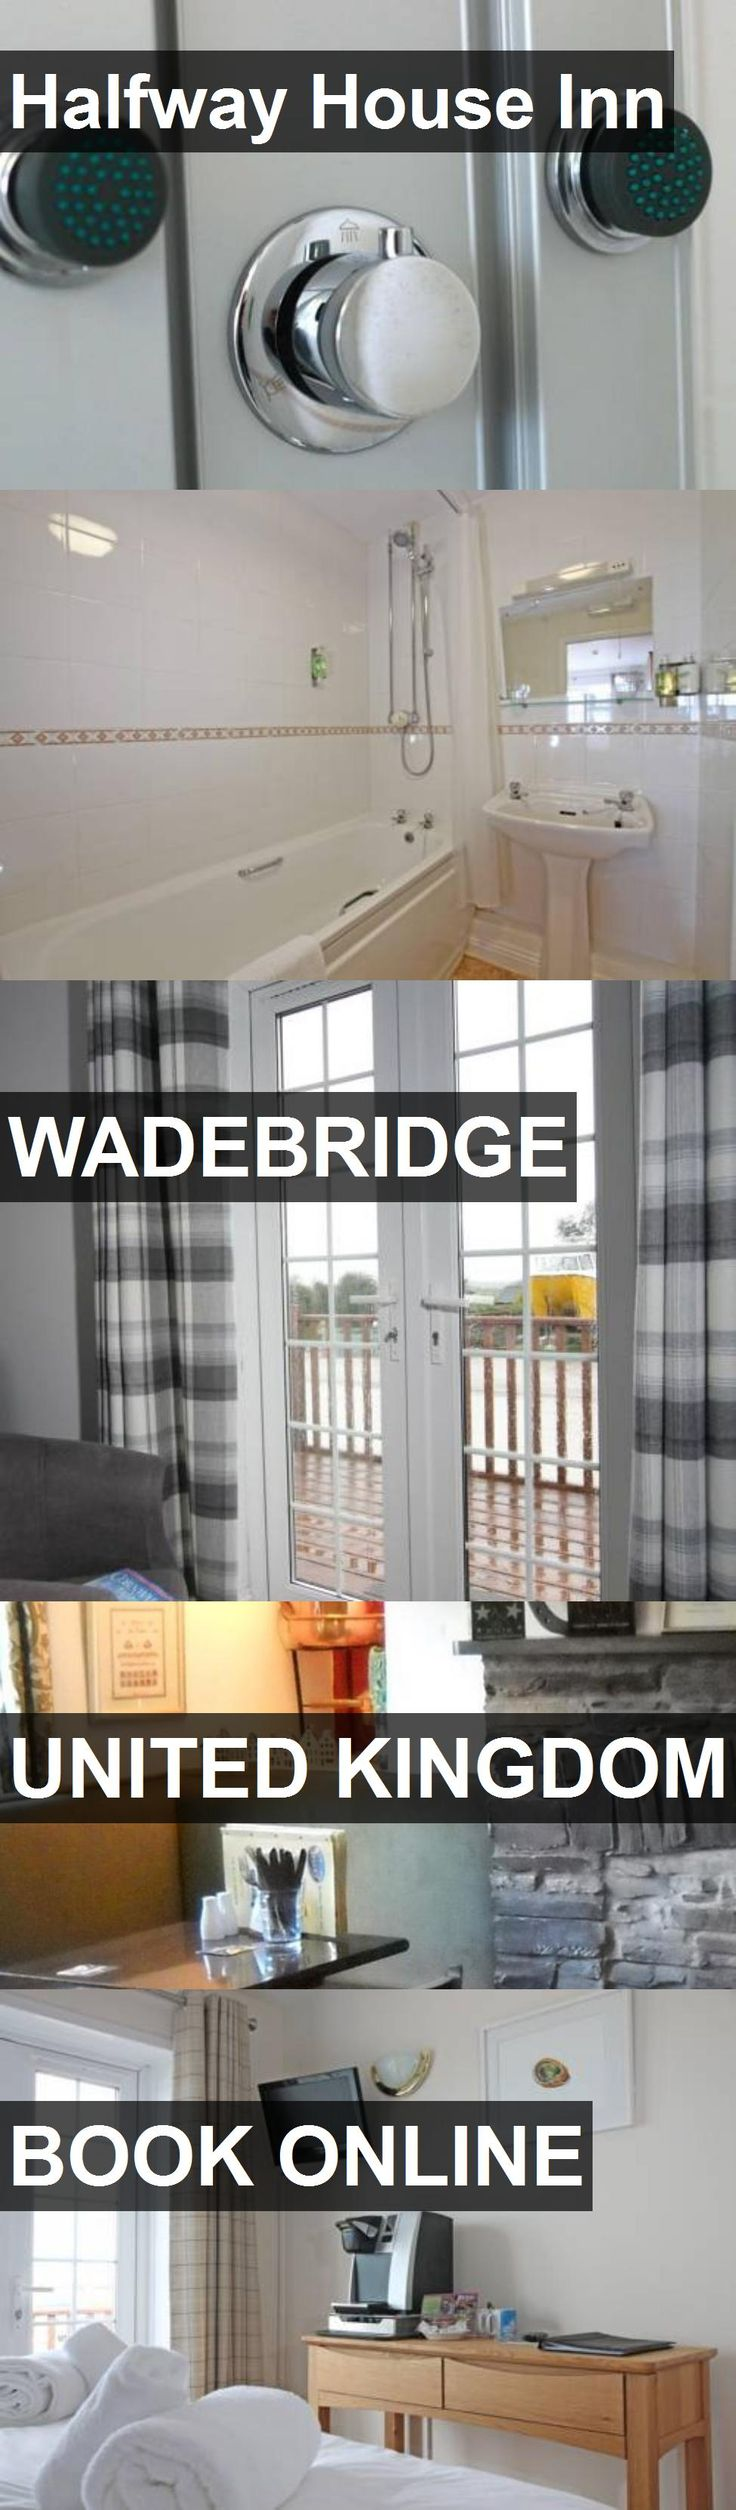 Hotel Halfway House Inn in Wadebridge, United Kingdom. For more information, photos, reviews and best prices please follow the link. #UnitedKingdom #Wadebridge #travel #vacation #hotel